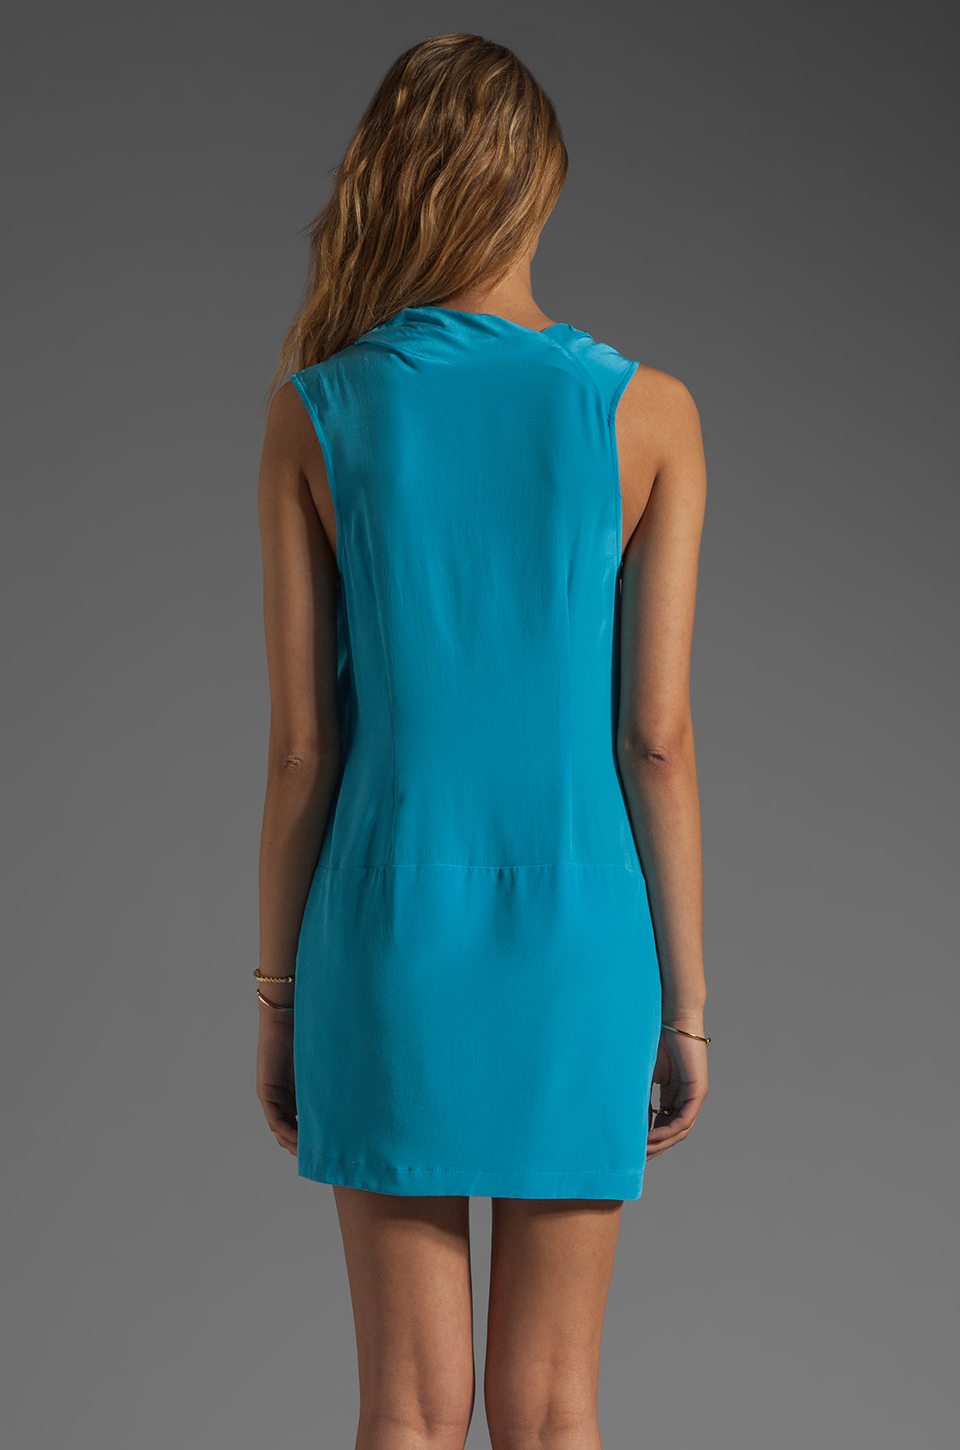 Tracy Reese Soft Solids Surplice Shift Dress in Vivid Blue